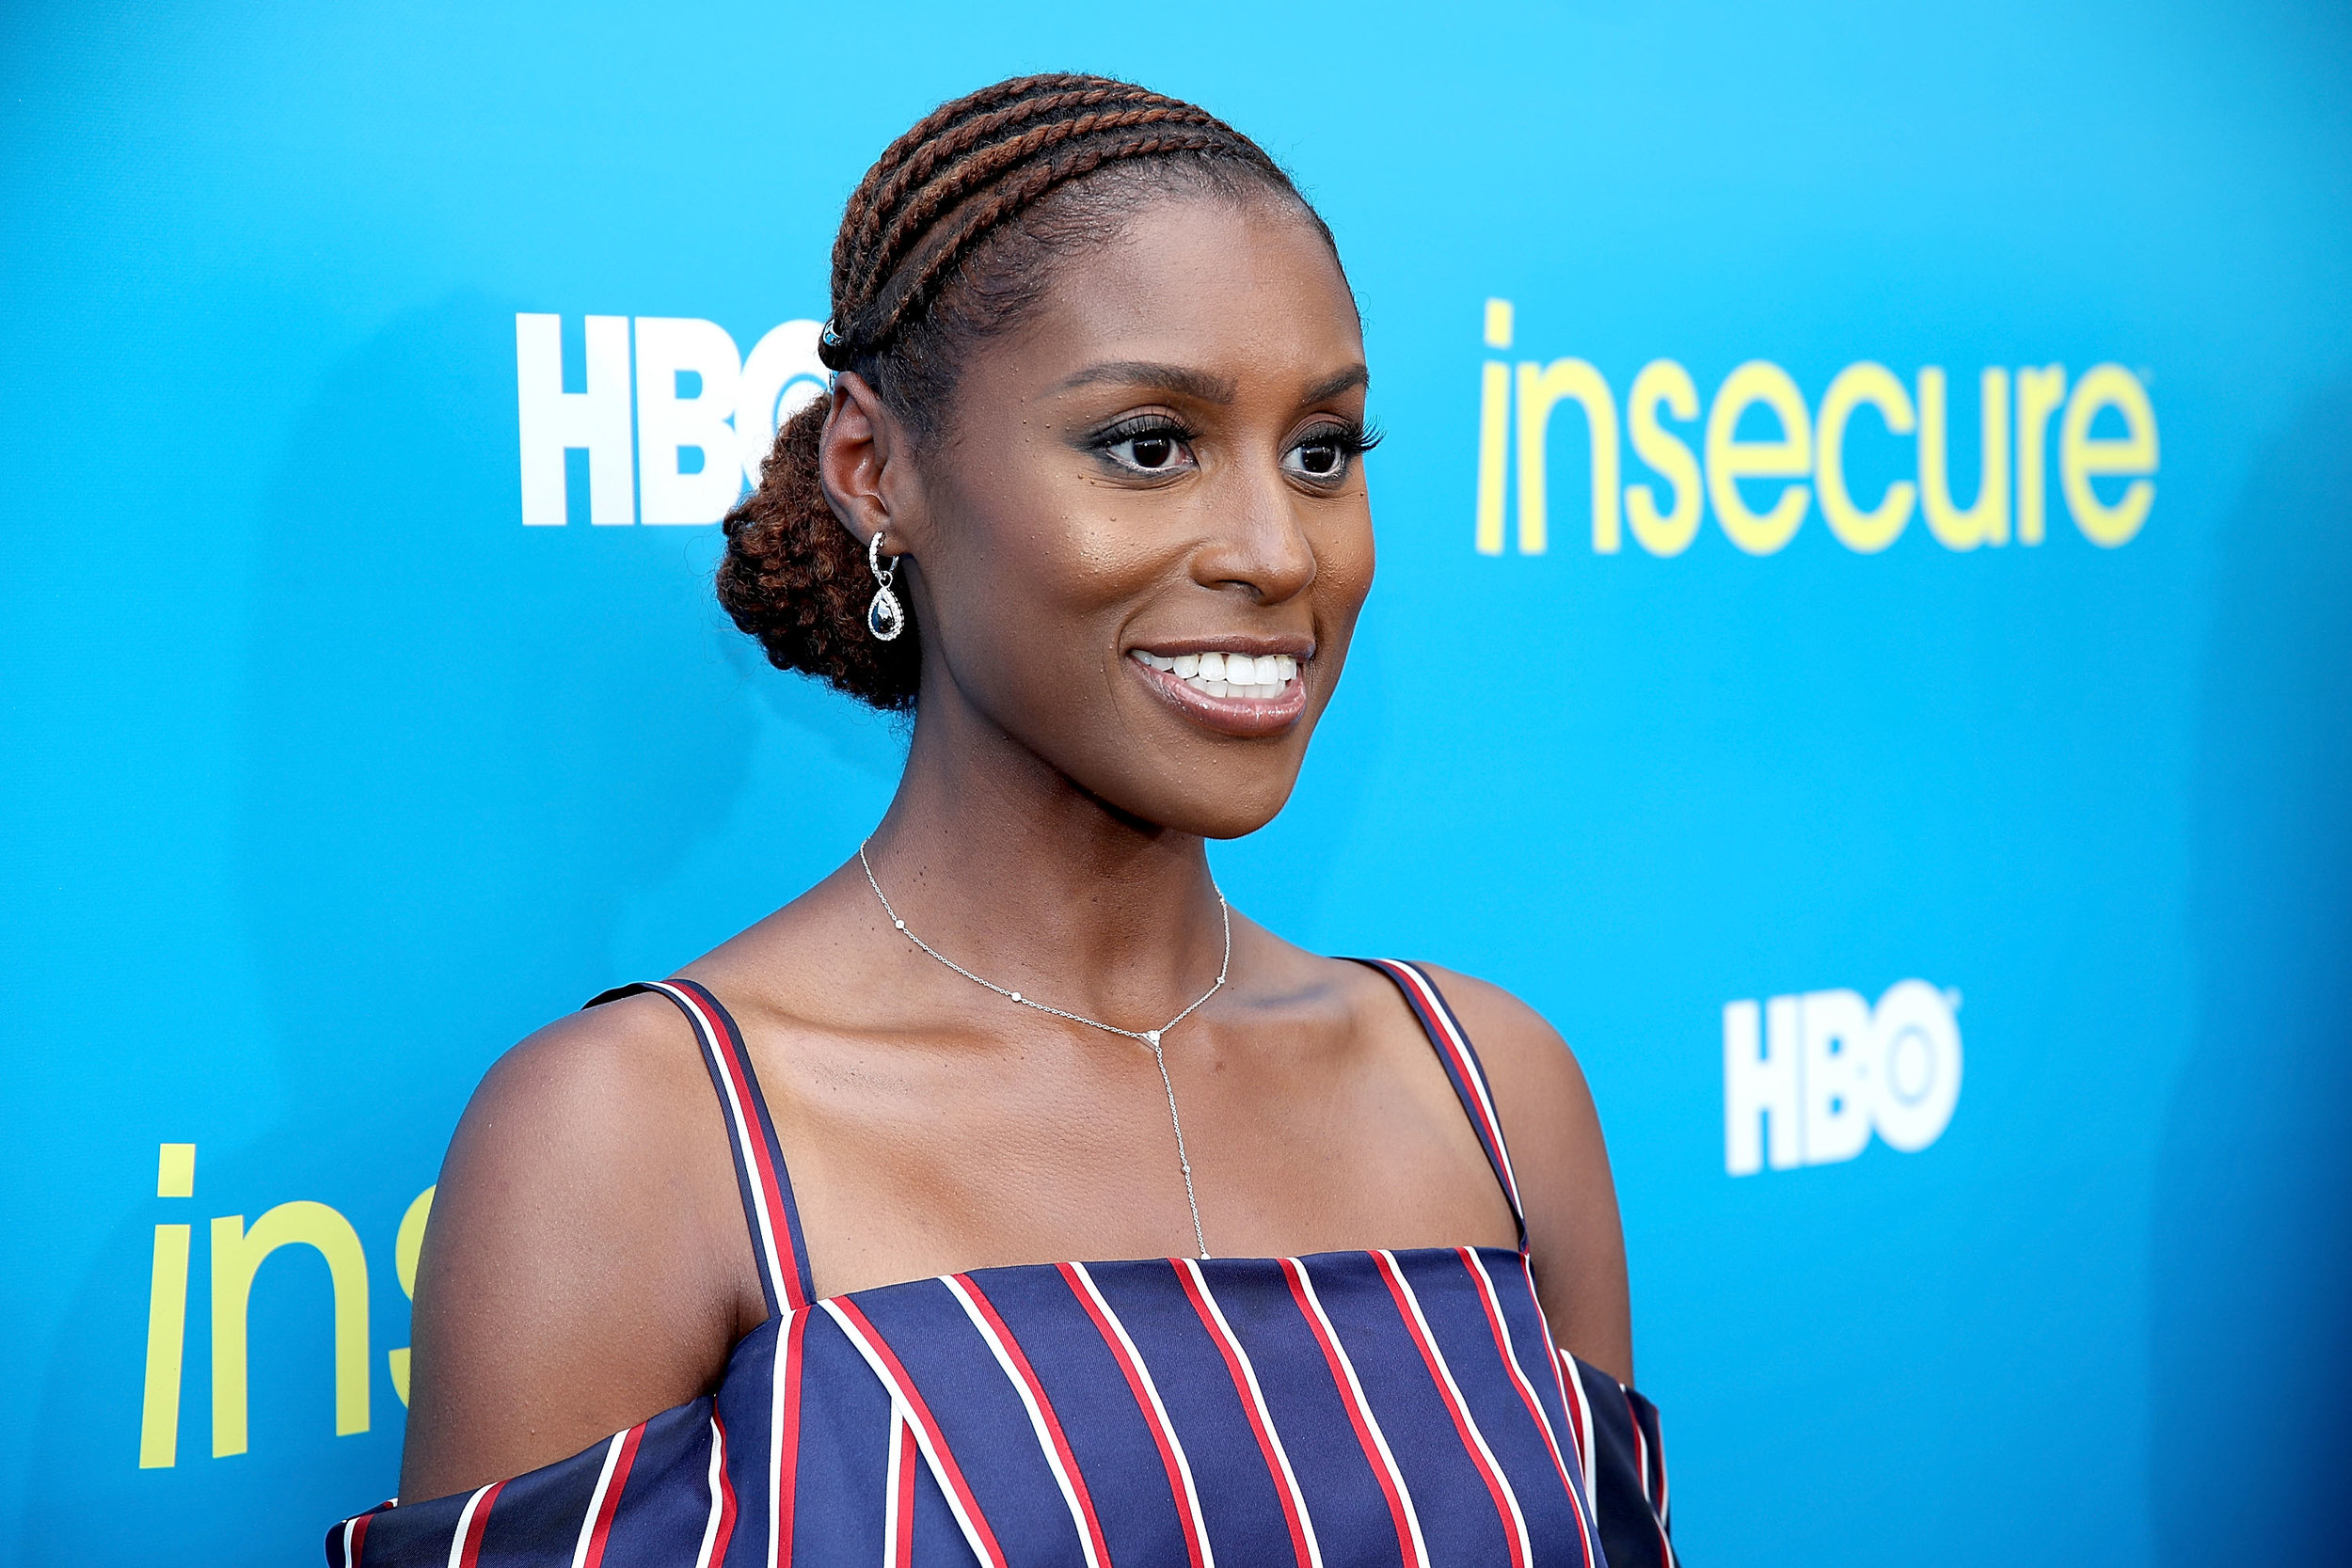 815304828-hbo-celebrates-new-season-of-insecure-with-block-party-in-inglewood.jpg.jpg